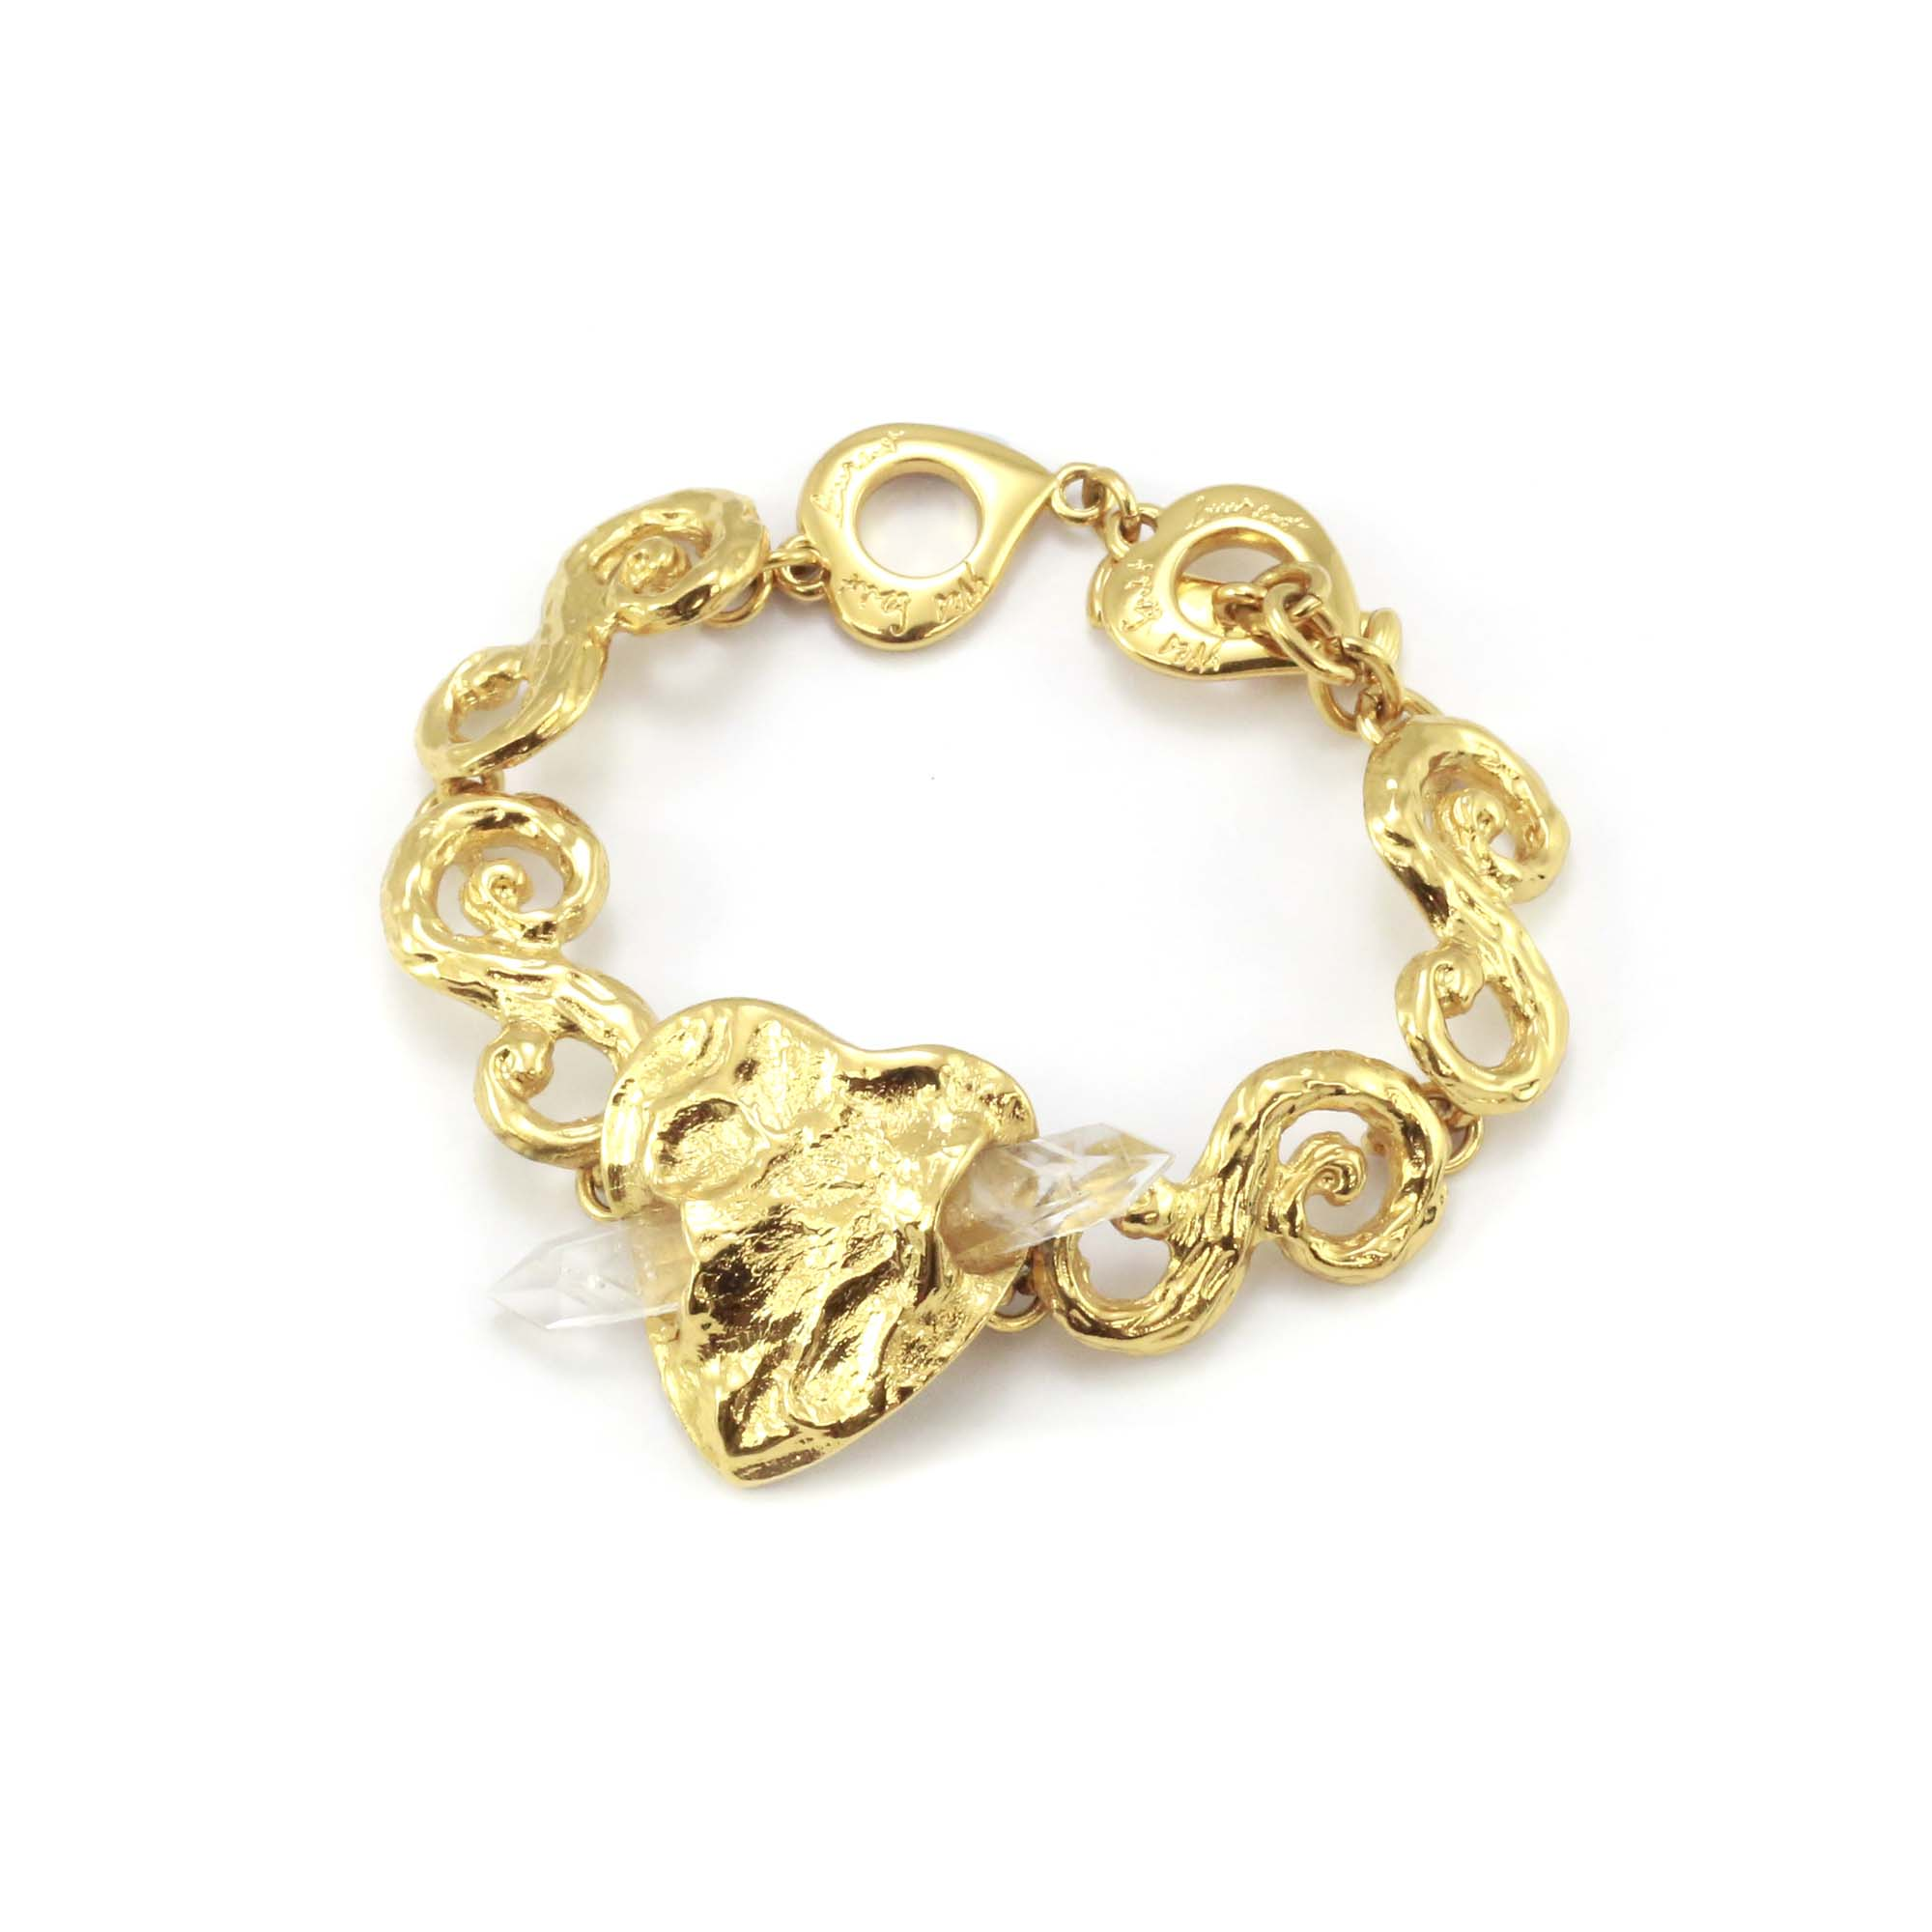 Second hand yves saint laurent crystal heart bracelet the fifth collection - Bracelet yves saint laurent ...